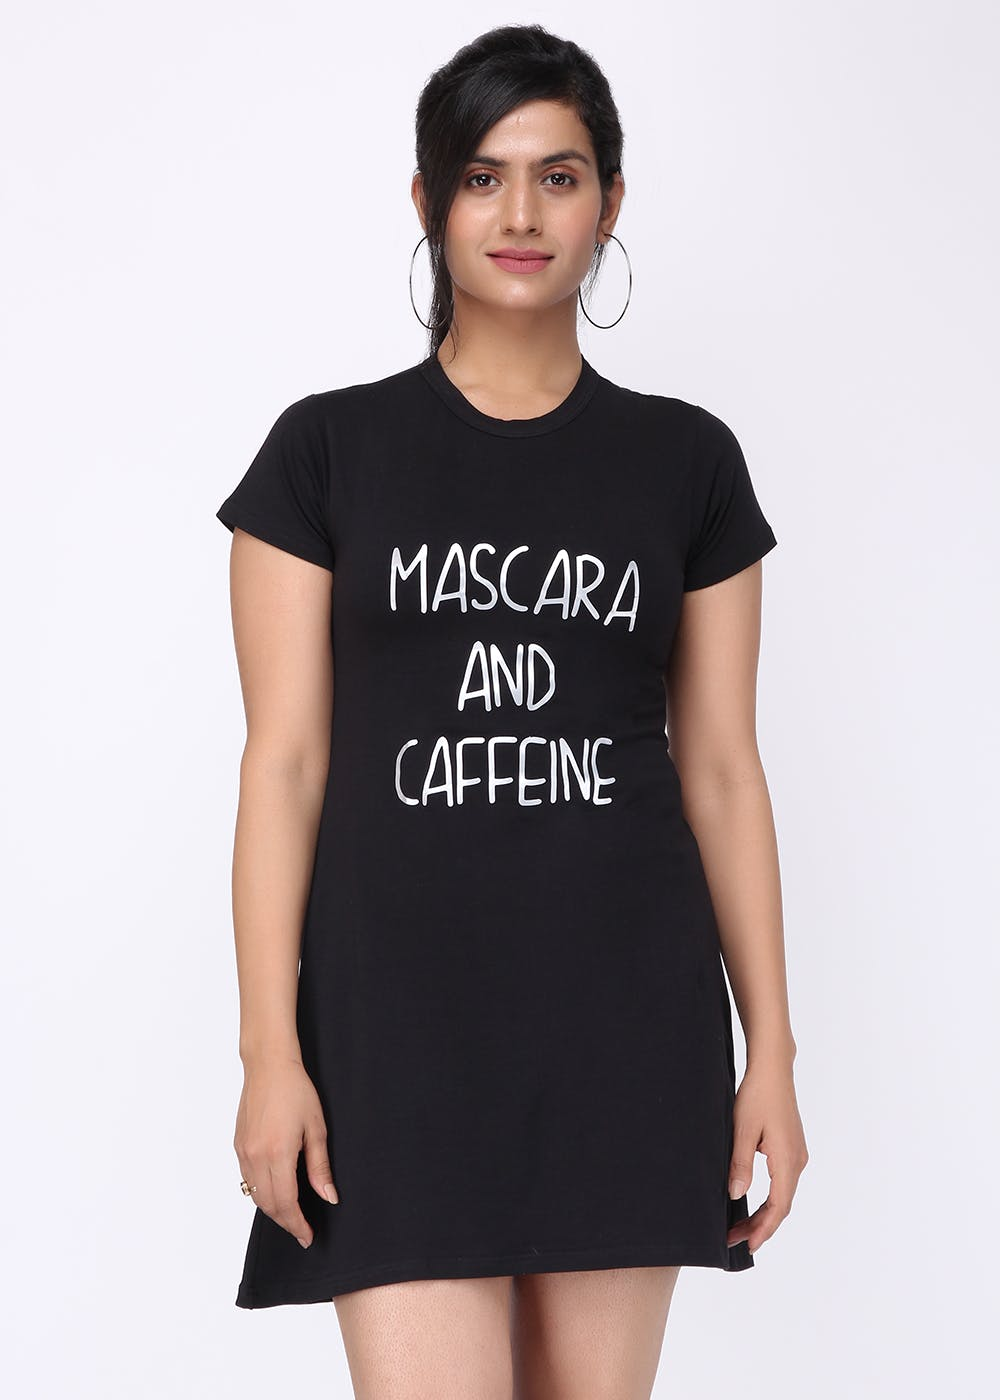 """Mascara And Caffeine"" Dress"